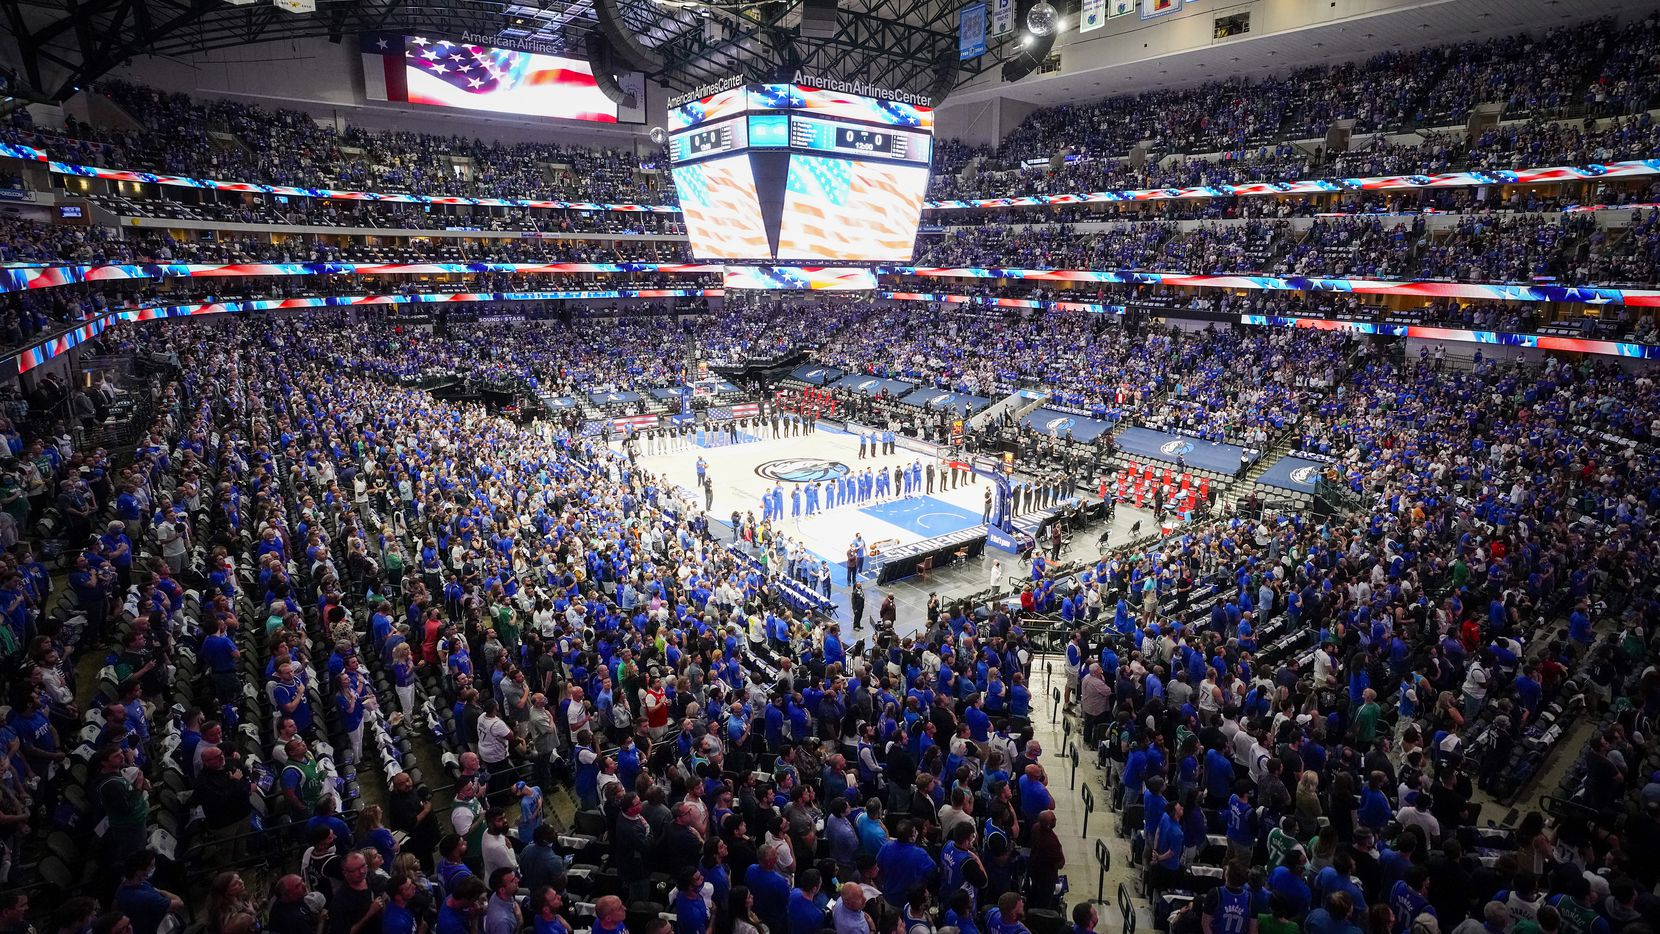 Dallas Mavericks players and fans stand for the national anthem before an NBA playoff basketball game against the LA Clippers at the American Airlines Center on Friday, June 4, 2021, in Dallas.